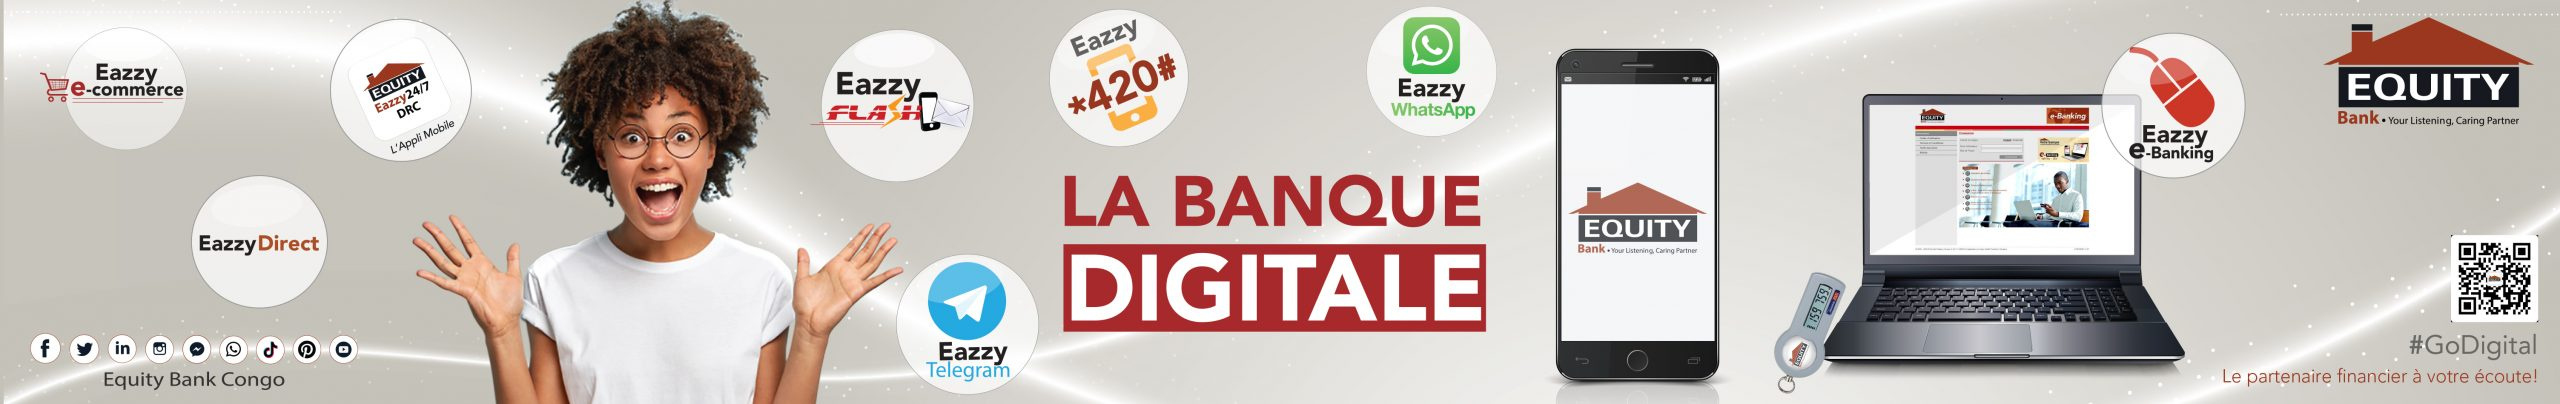 EQUITY – BANQUE_DIGITAL